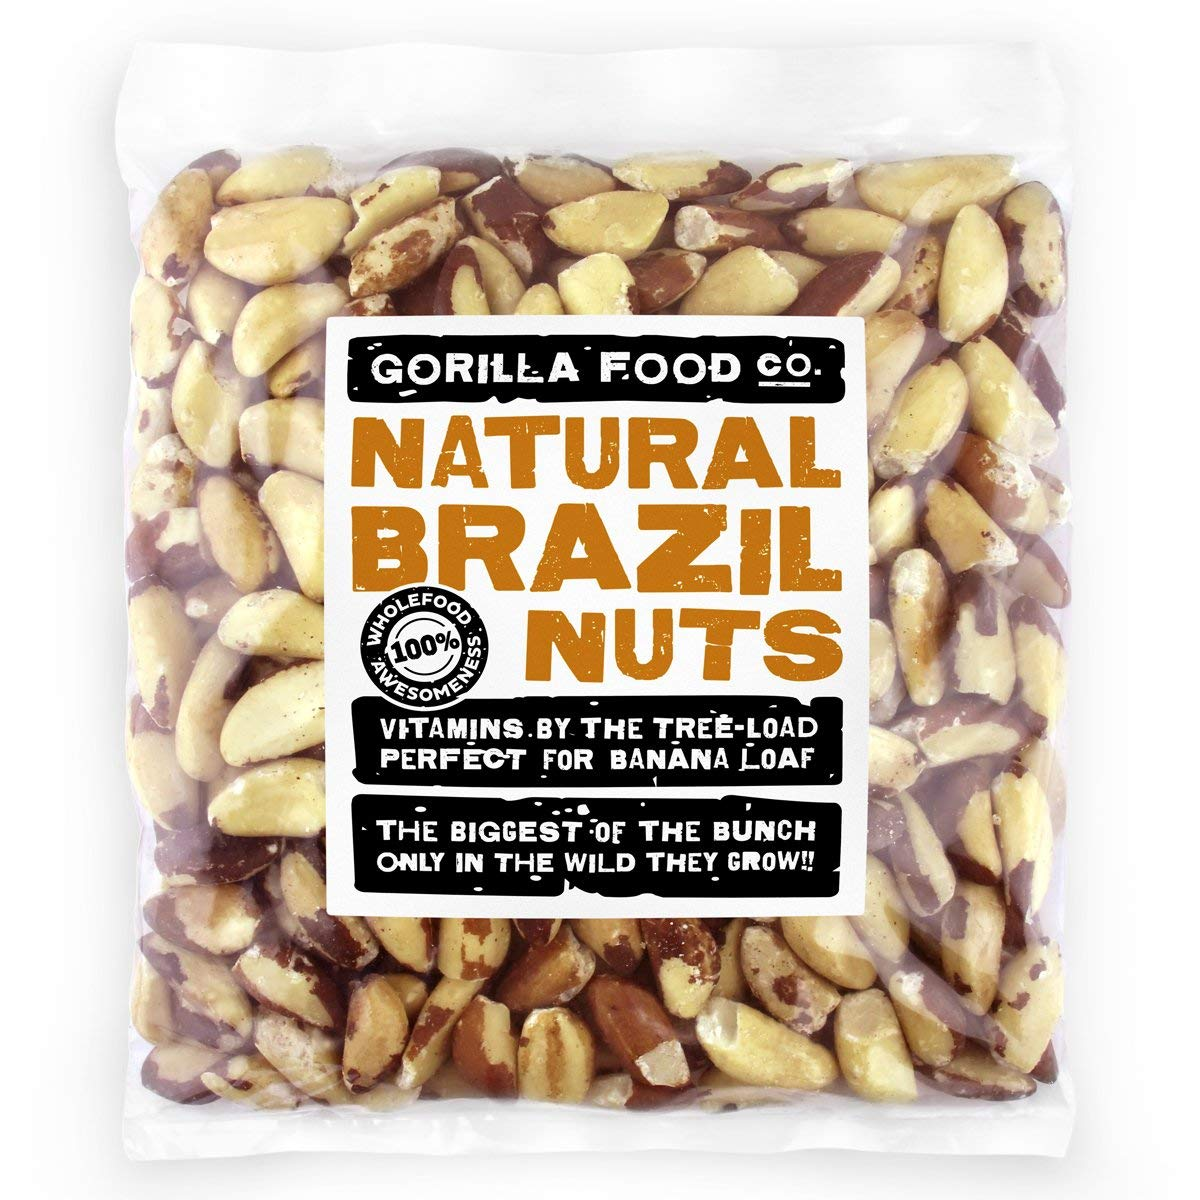 Premium Brazil Nuts Raw Whole - 2Lb Resealable Bag by Gorilla Food Co